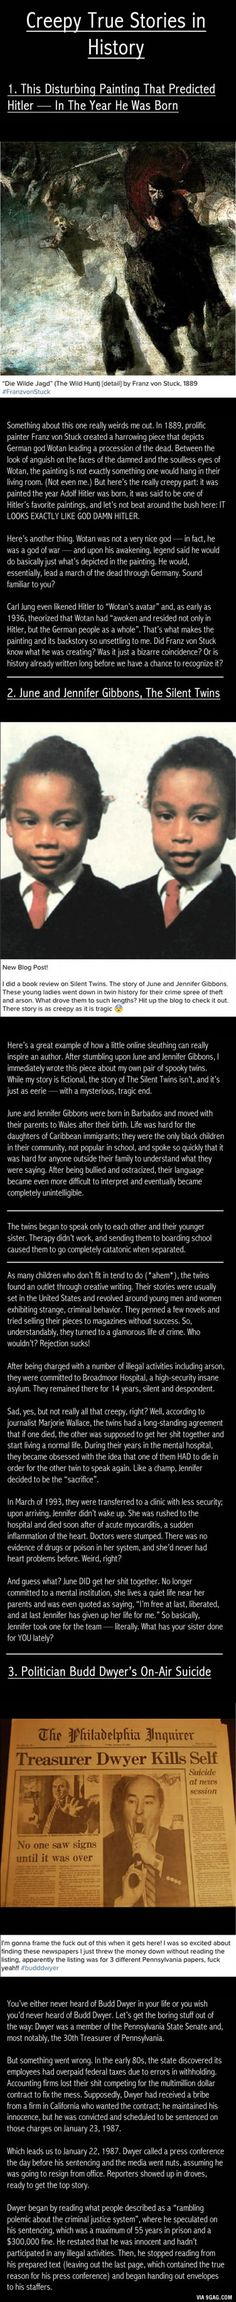 New ideas for history weird scary funny Scary Stories, Ghost Stories, Horror Stories, True Stories, Creepy Facts, Fun Facts, Creepy Things, Scary Stuff, Random Stuff